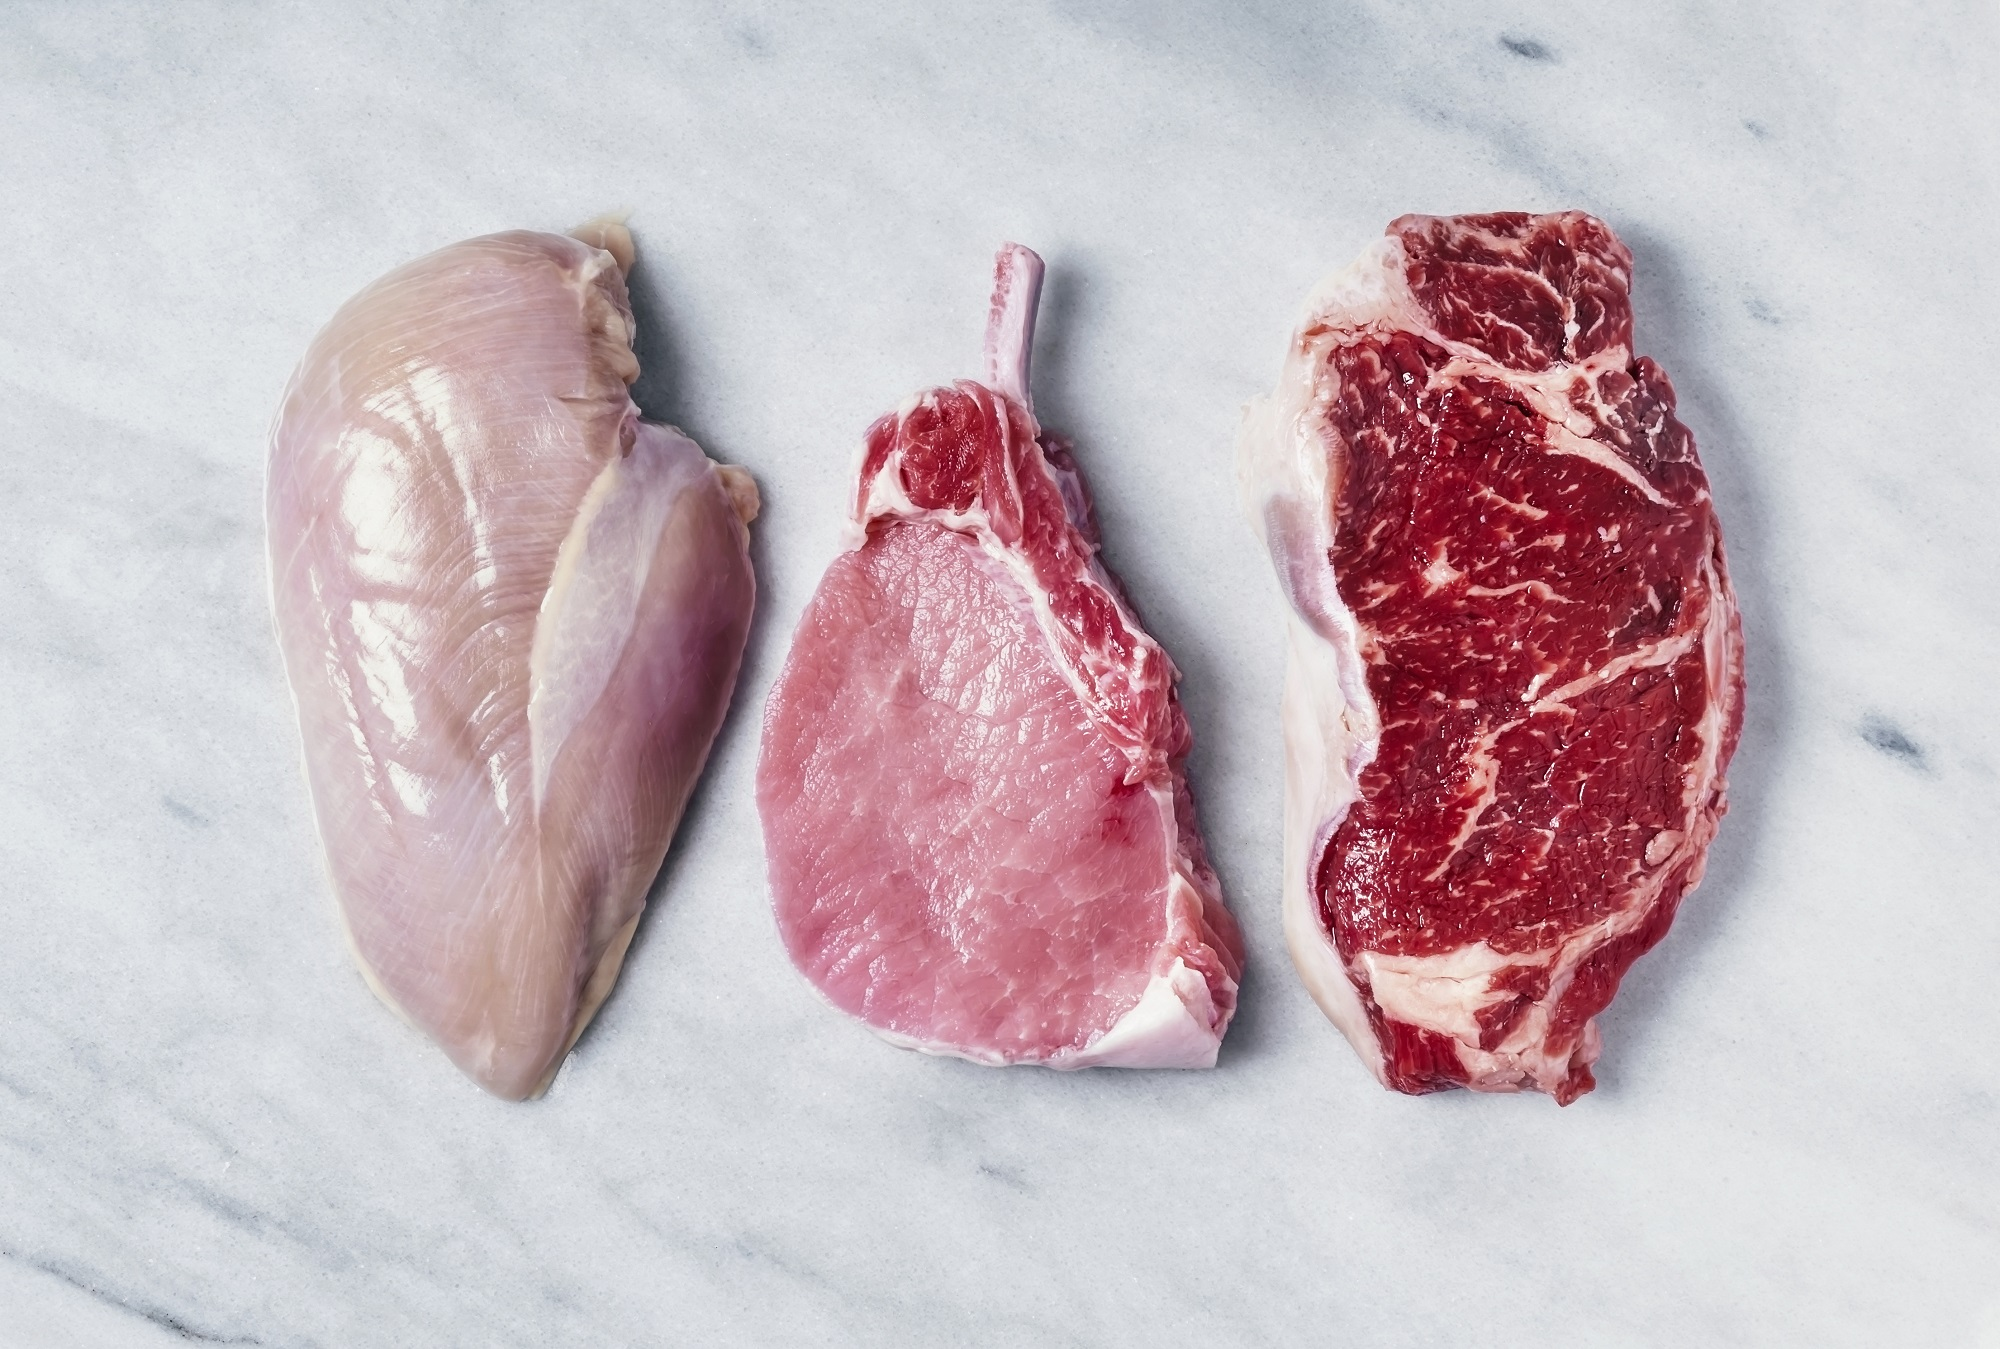 Is It Safe to Refreeze Raw Meat and Poultry that Has Thawed?